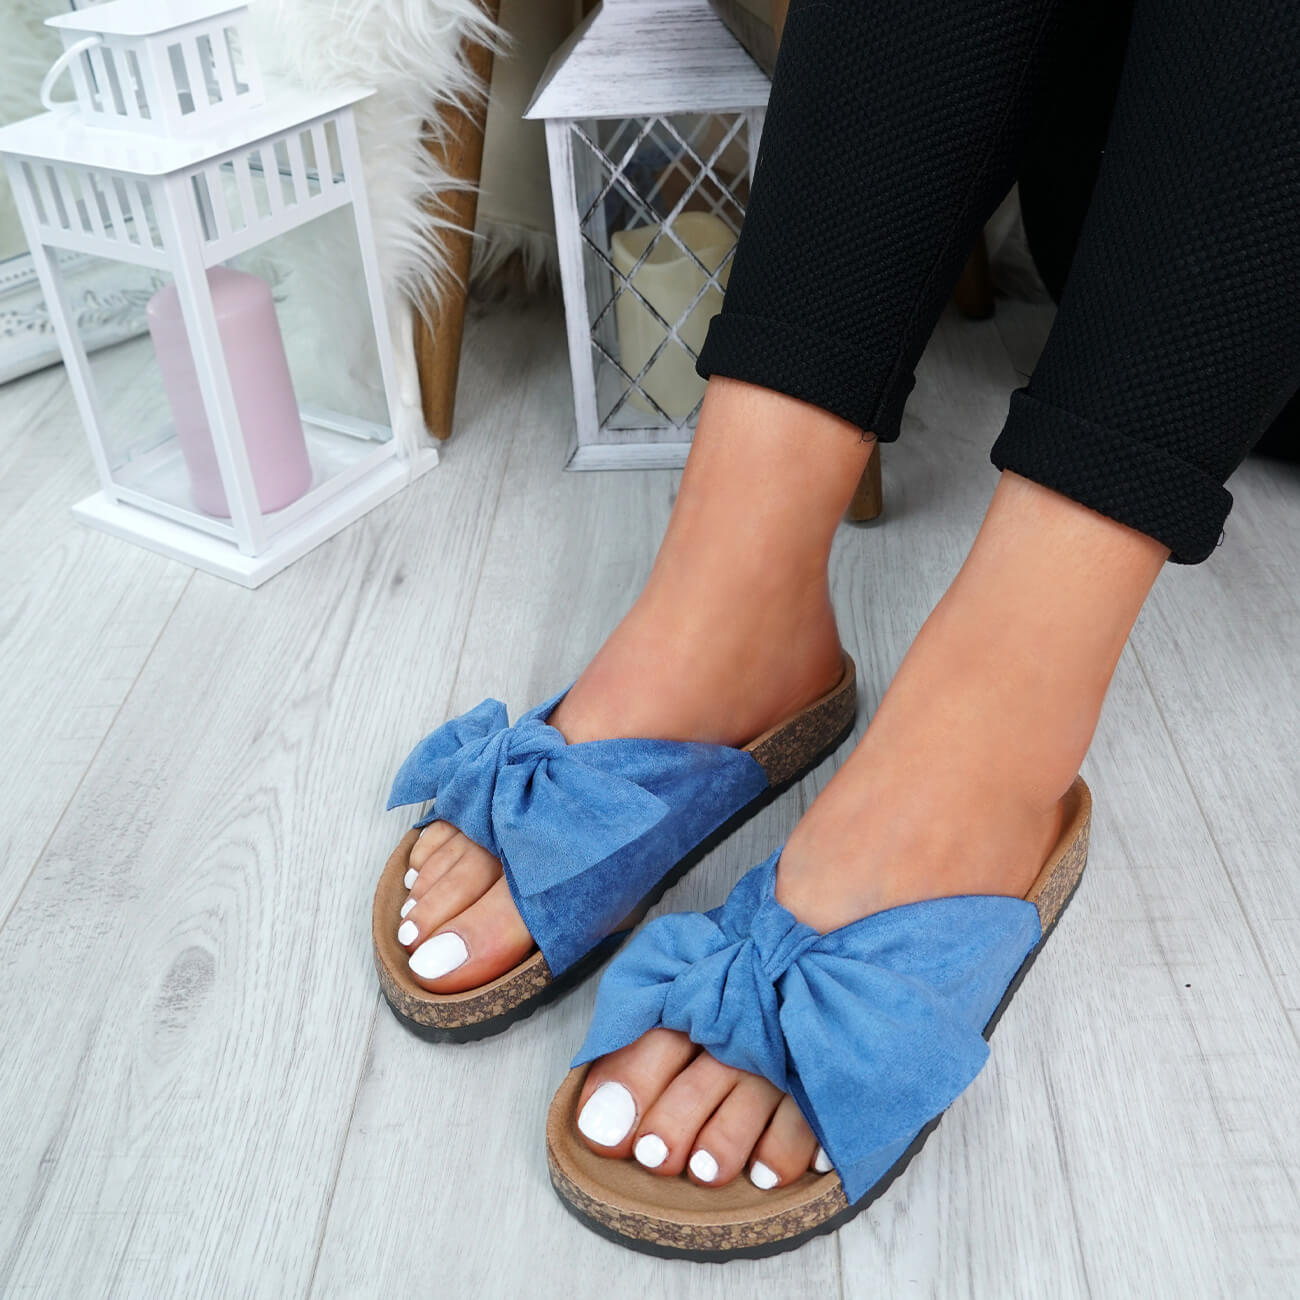 WOMENS-LADIES-SLIP-ON-FLAT-SANDALS-BOW-SLIDERS-SUMMER-CASUAL-SHOES-SIZE thumbnail 19